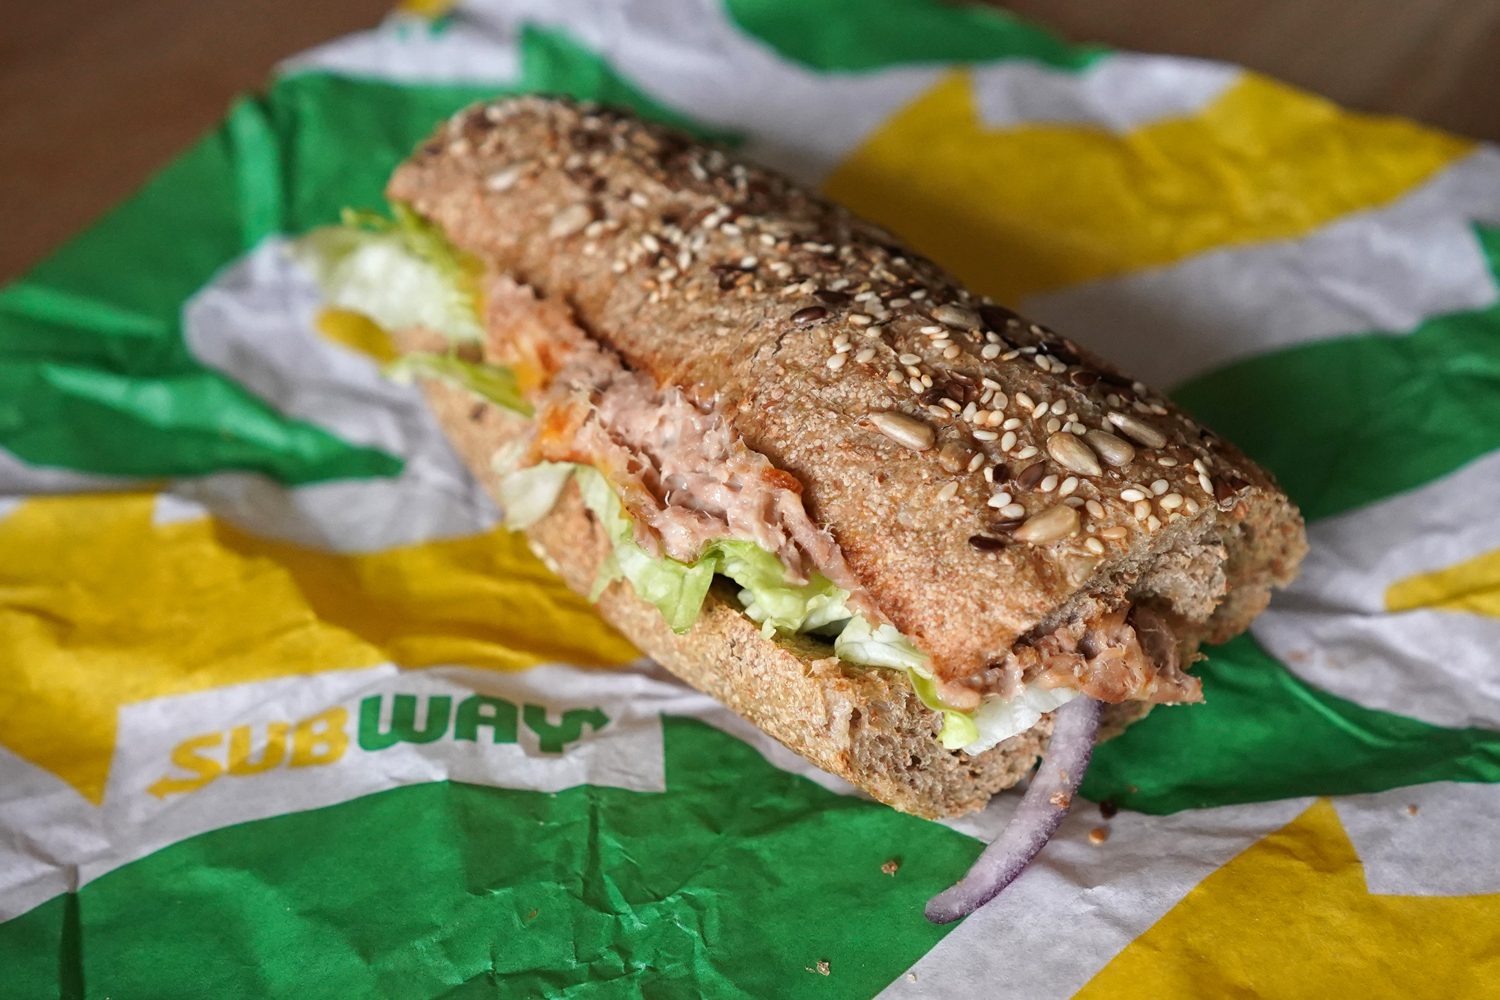 """A """"Tuna Sandwich"""" from the fast food chain """"Subway"""""""